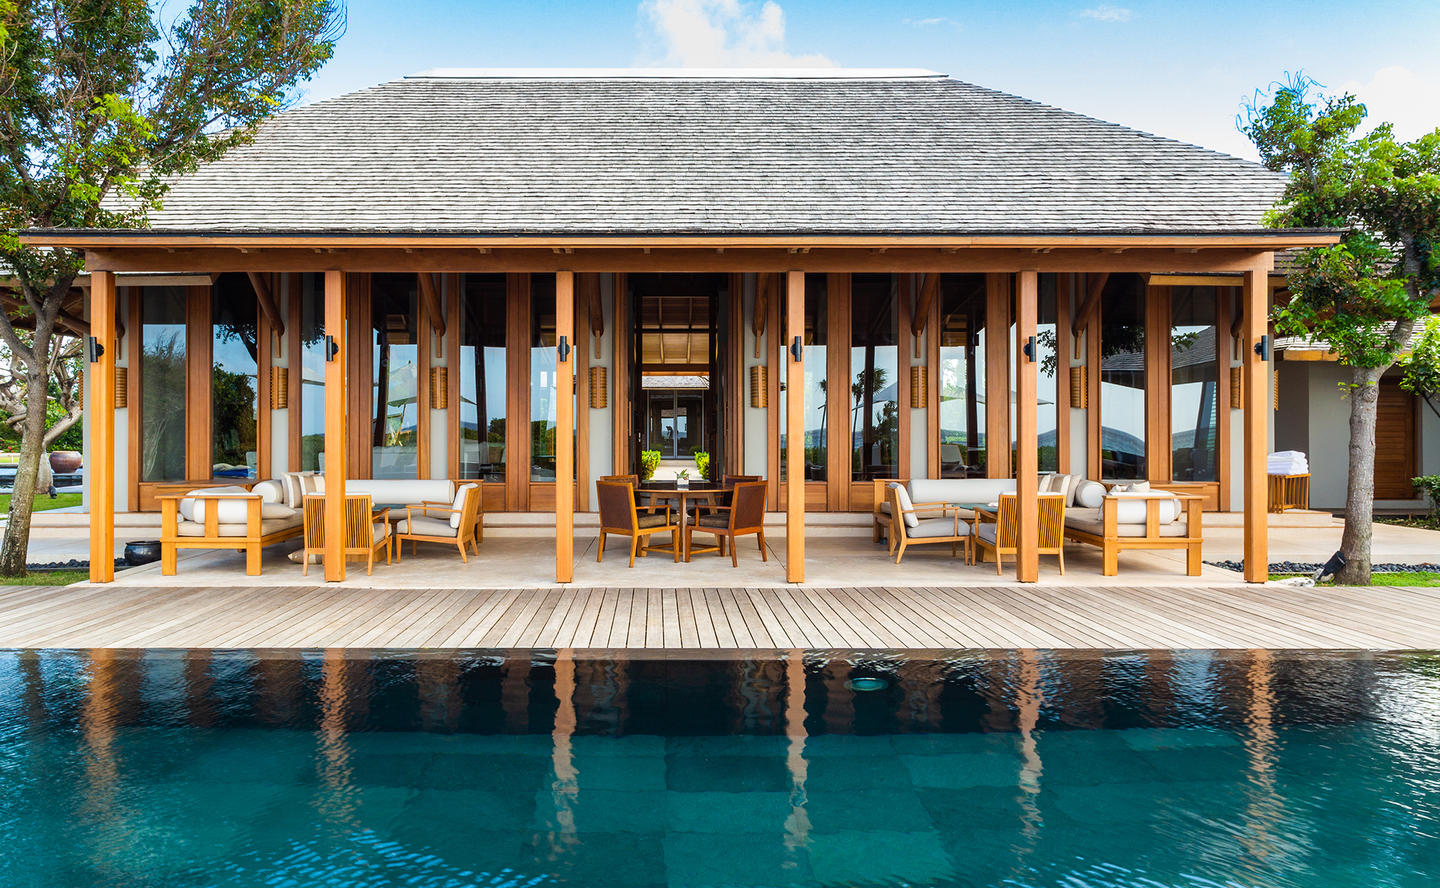 Main Pavilion, Four-Bedroom Deluxe Beach Sala Villa - Amanyara, Turks & Caicos